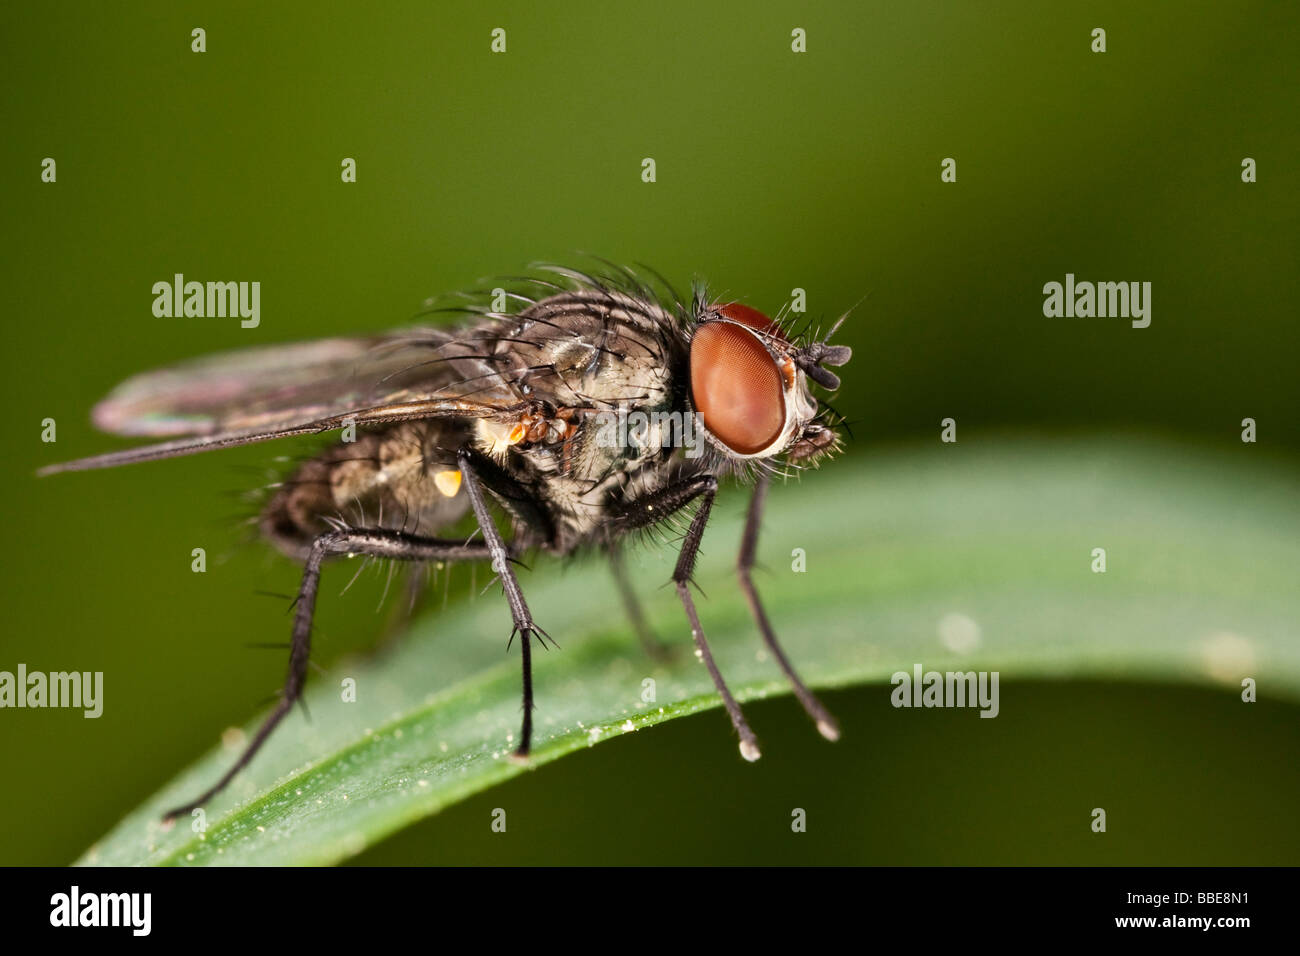 Common Housefly Fly Diptera Musca Stock Photos & Common Housefly Fly ...